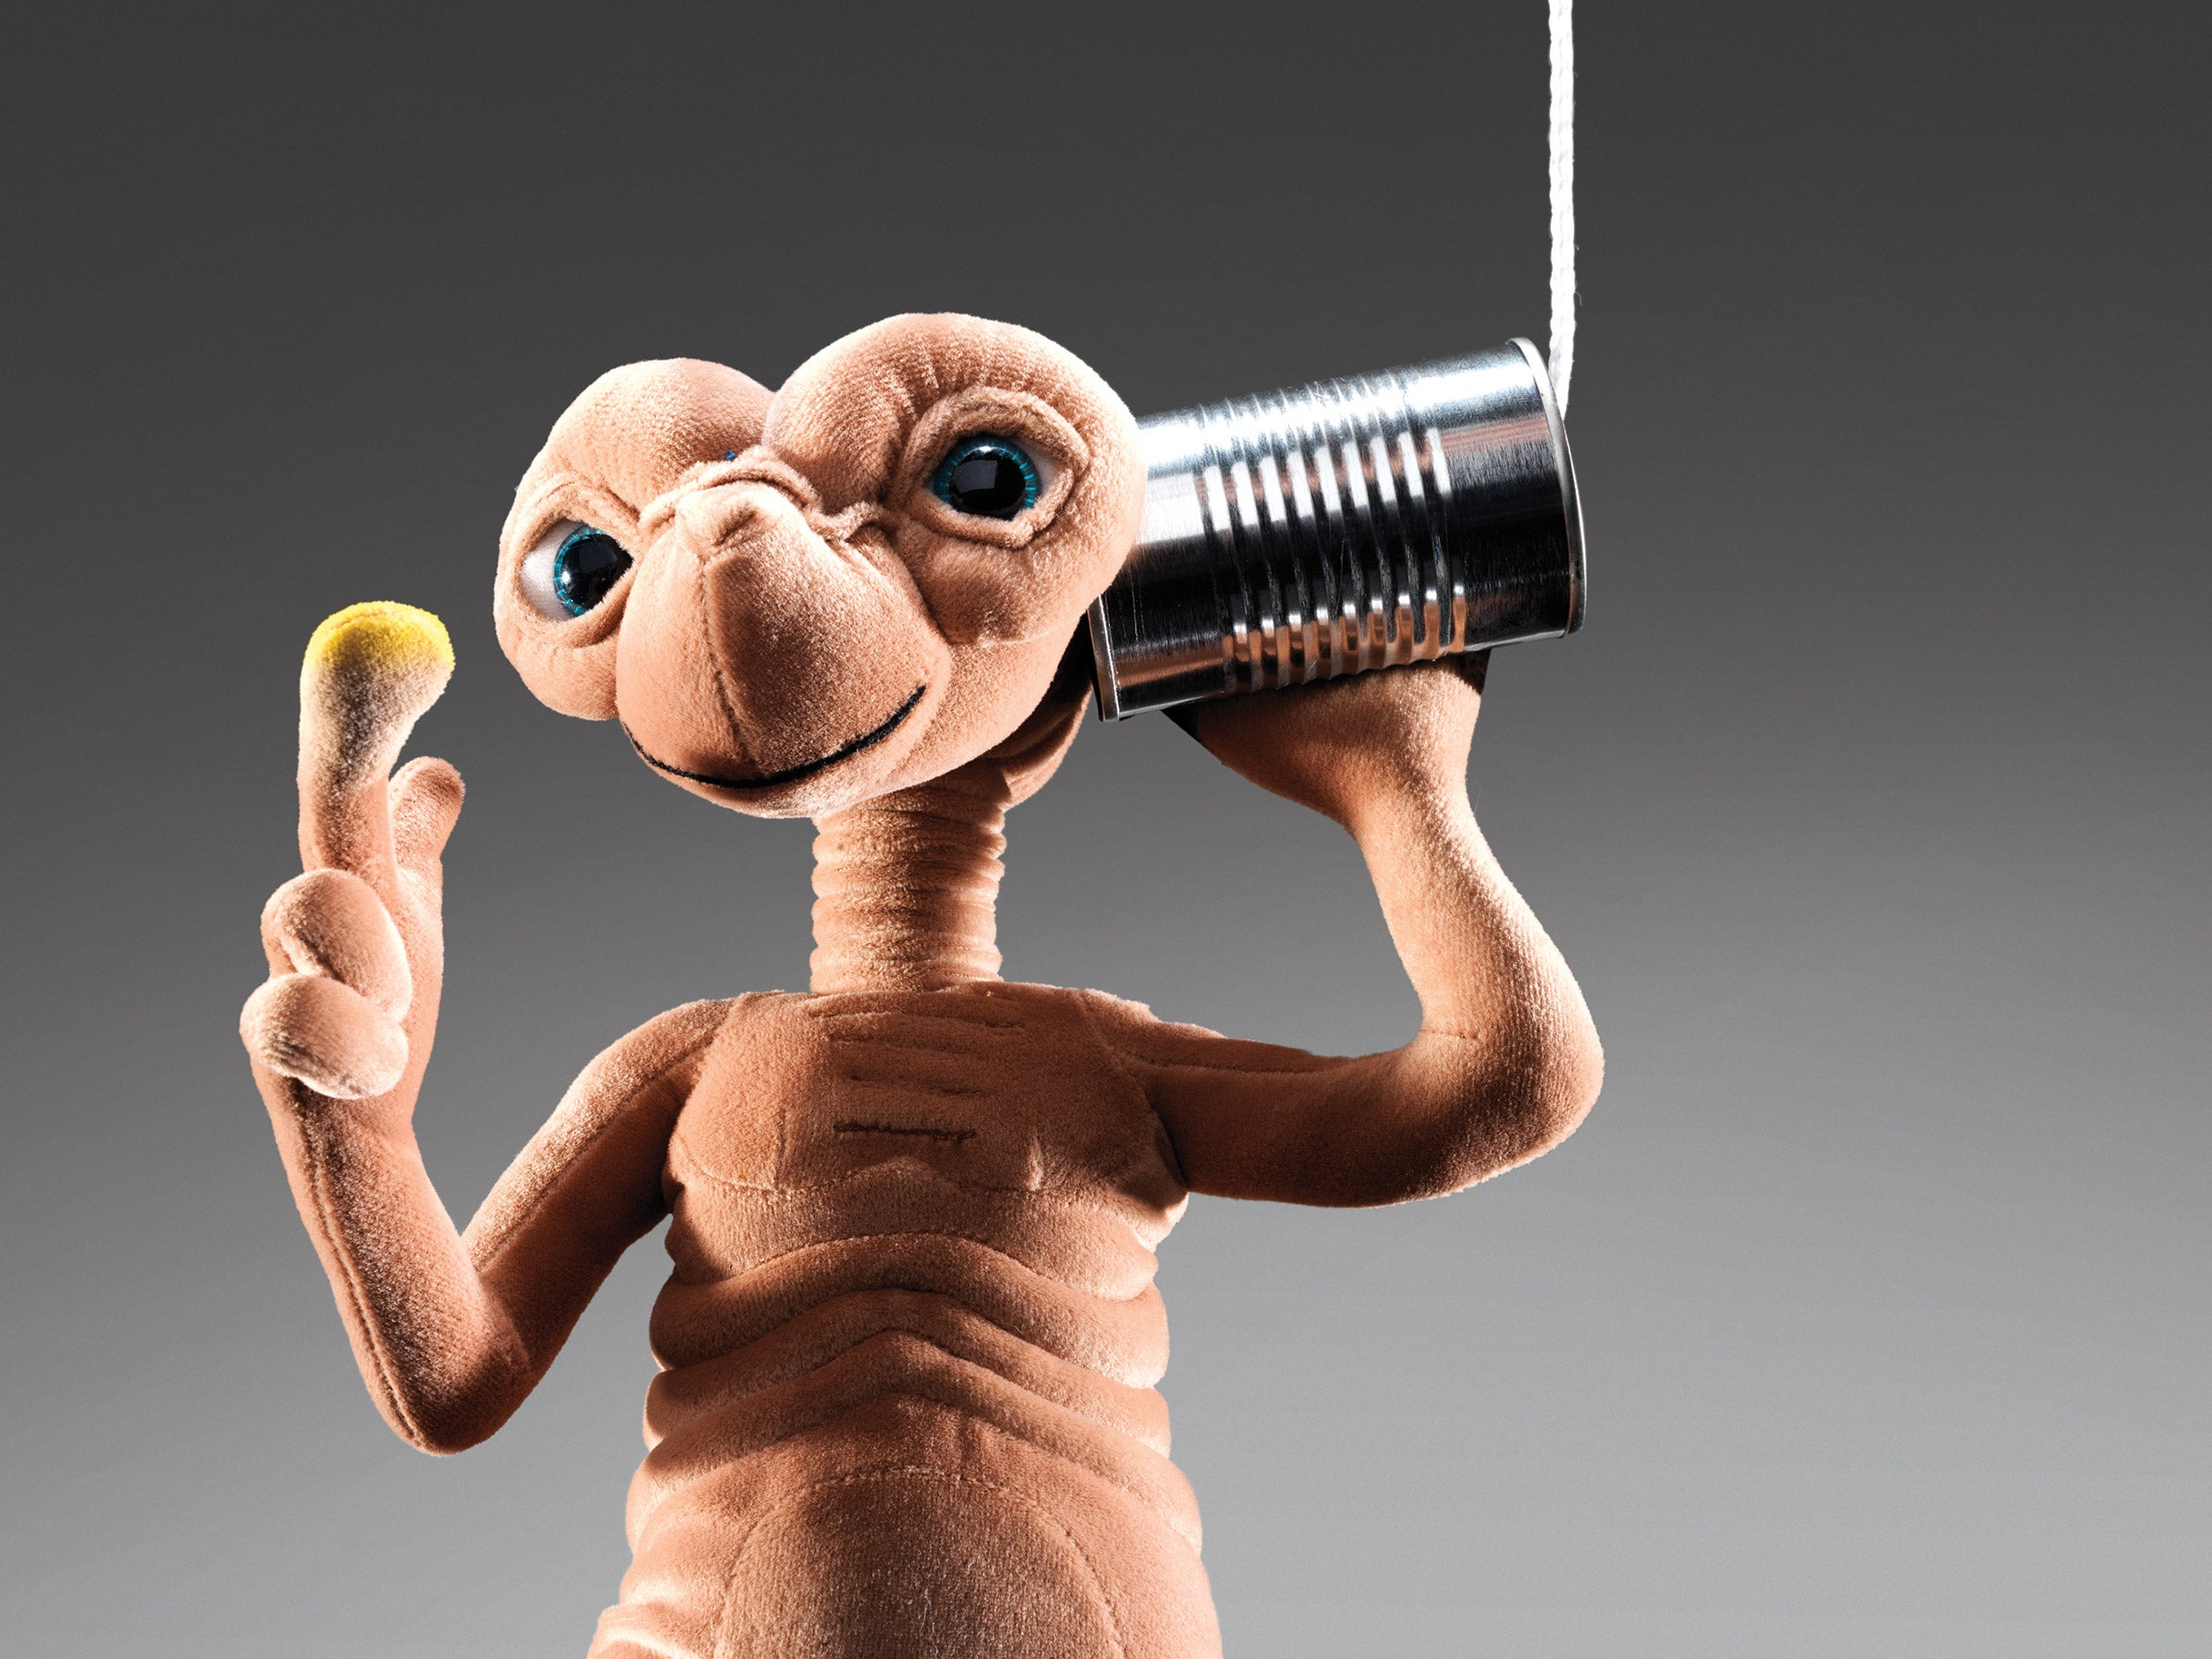 Is It Time To Phone E.T.?